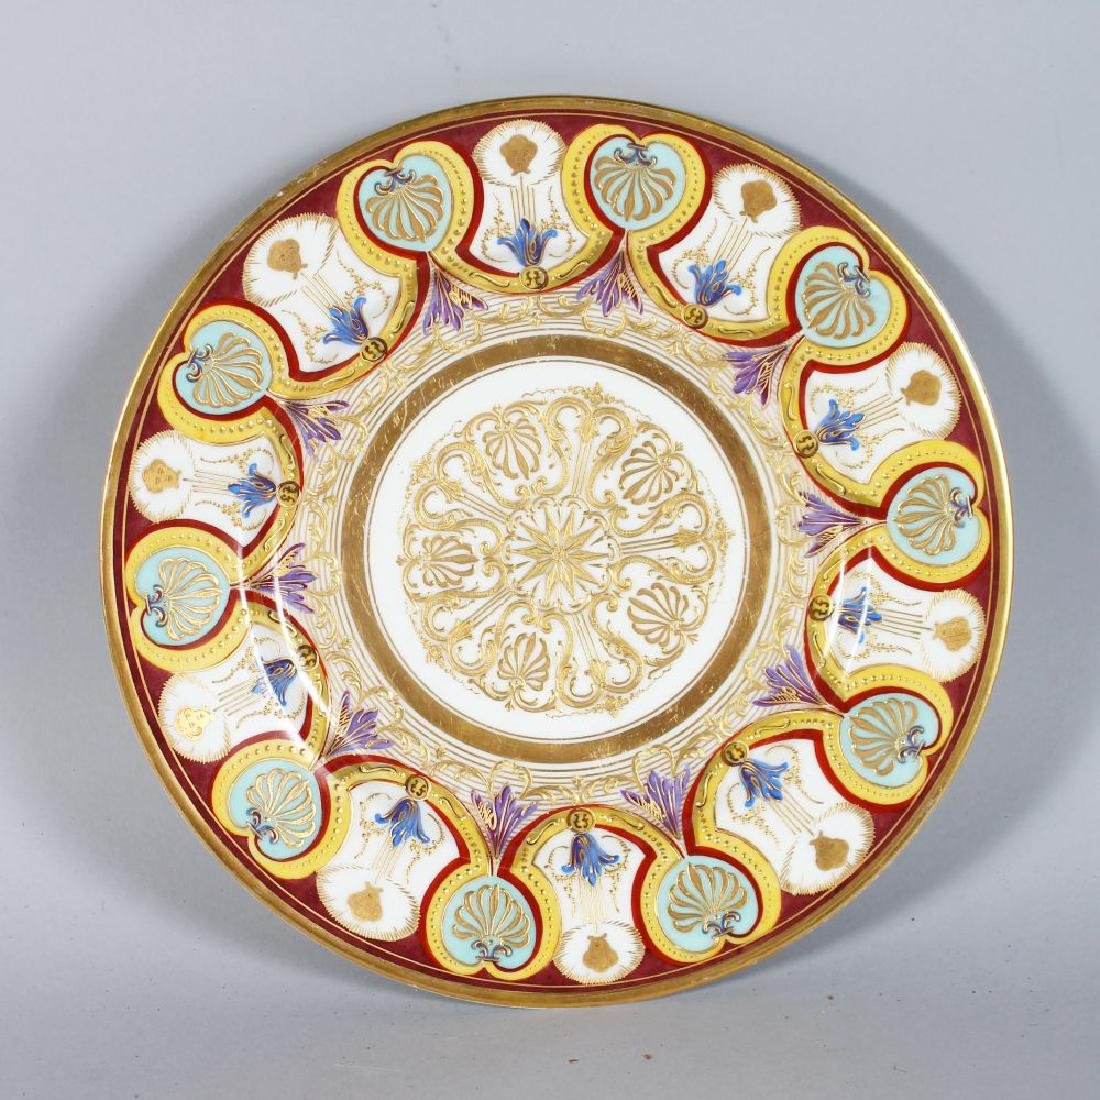 A SEVRES PORCELAIN CIRCULAR PLATE, the border with gold